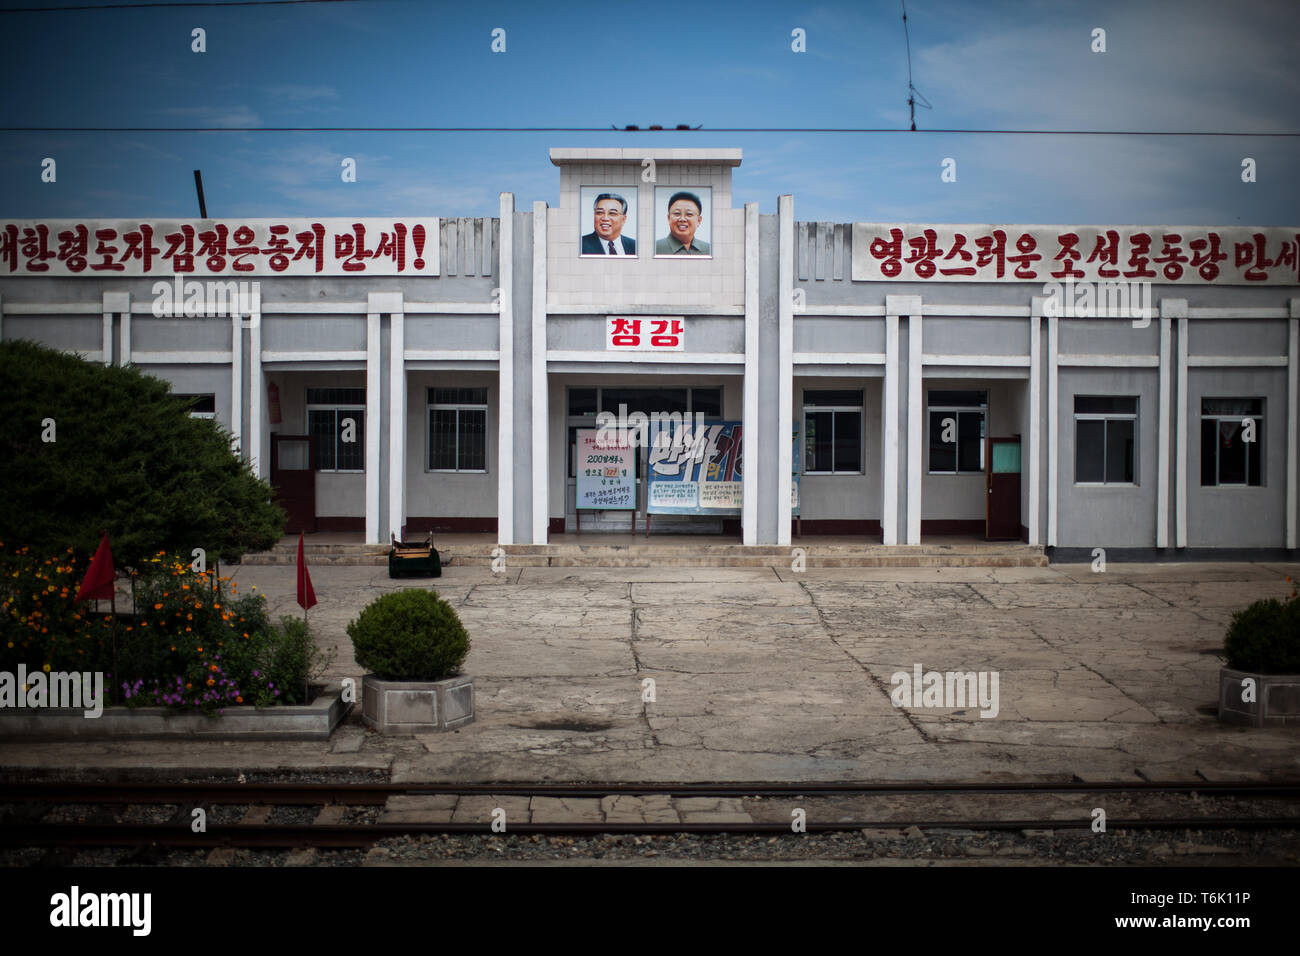 Portraits of Kim Il Sung and Kim Jong Il at a railway station in North Korea. - Stock Image